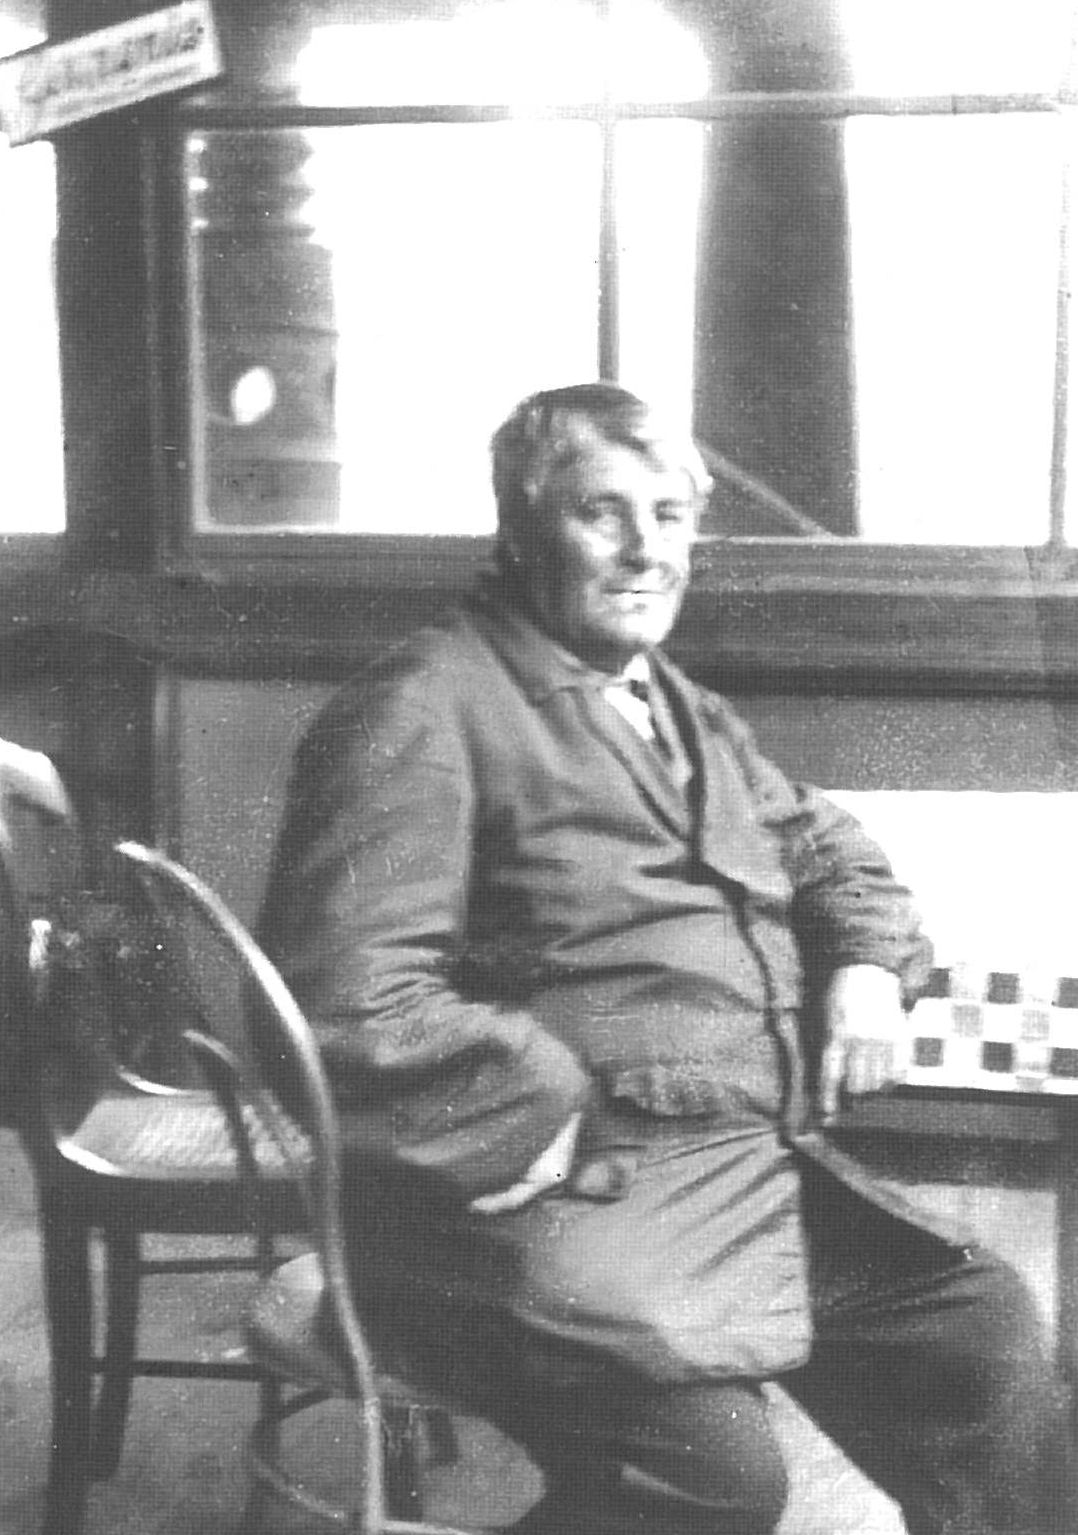 Image of Alois Erhardt from Wikidata